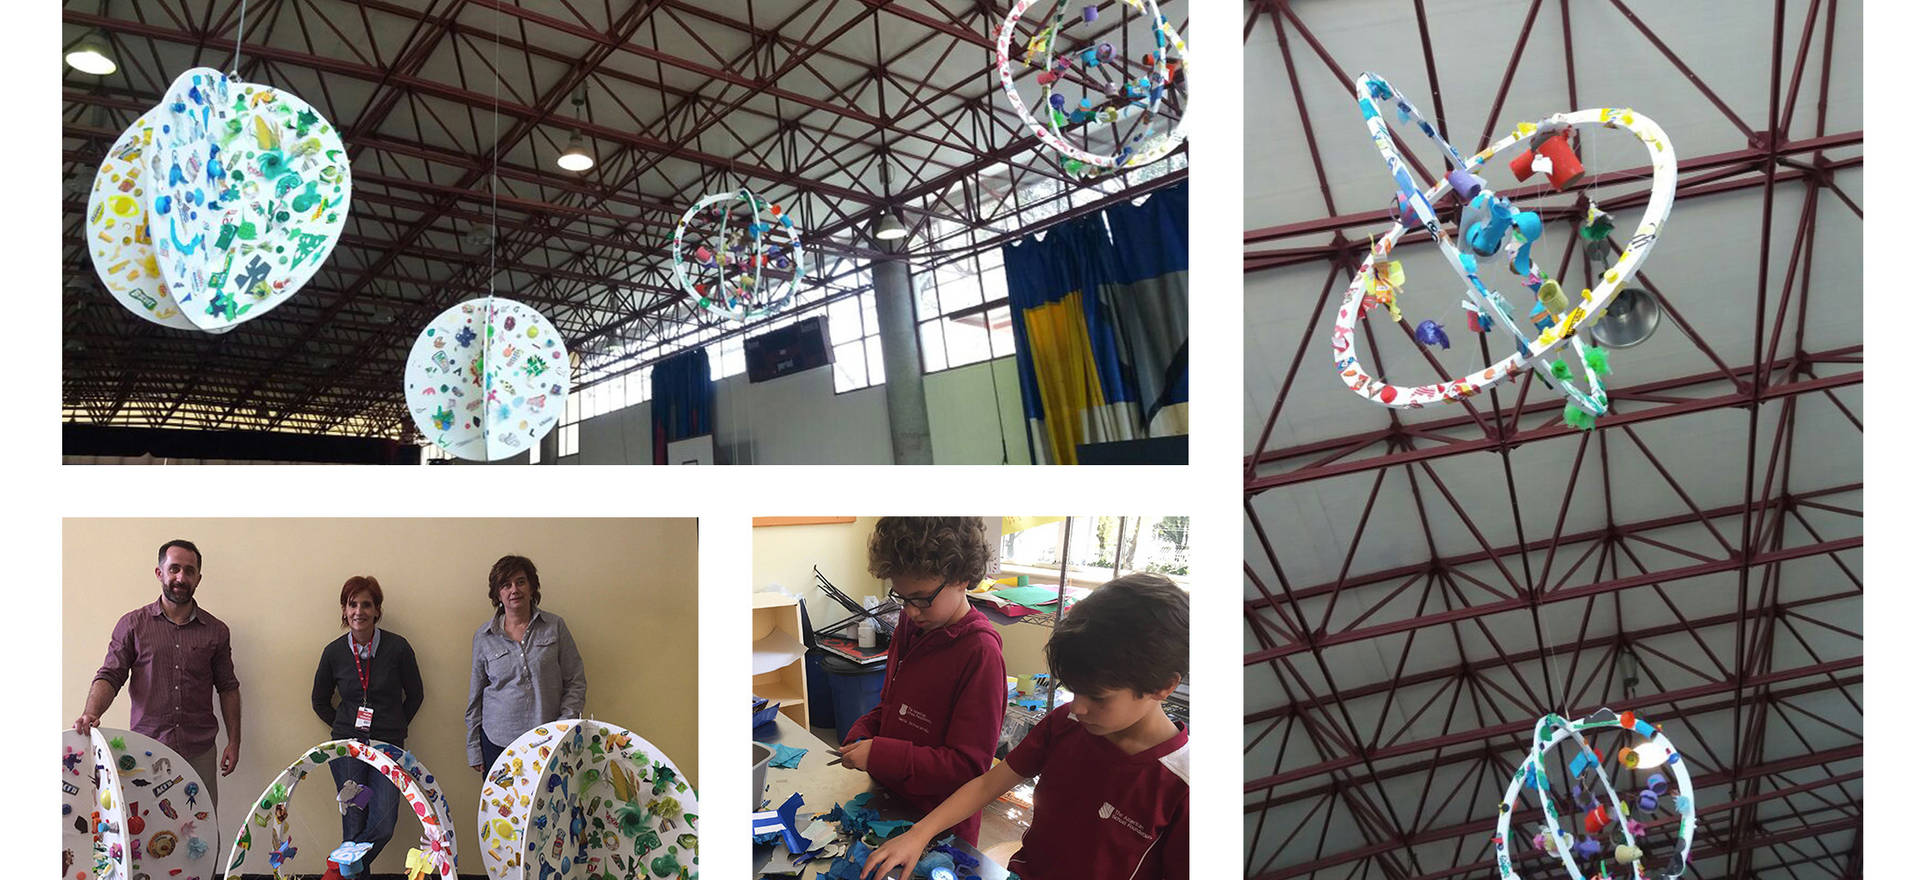 Glocal, 2017 Awareness building and trash recycling project made in collaboration with students of the American School Foundation. Mexico City, Mexico.